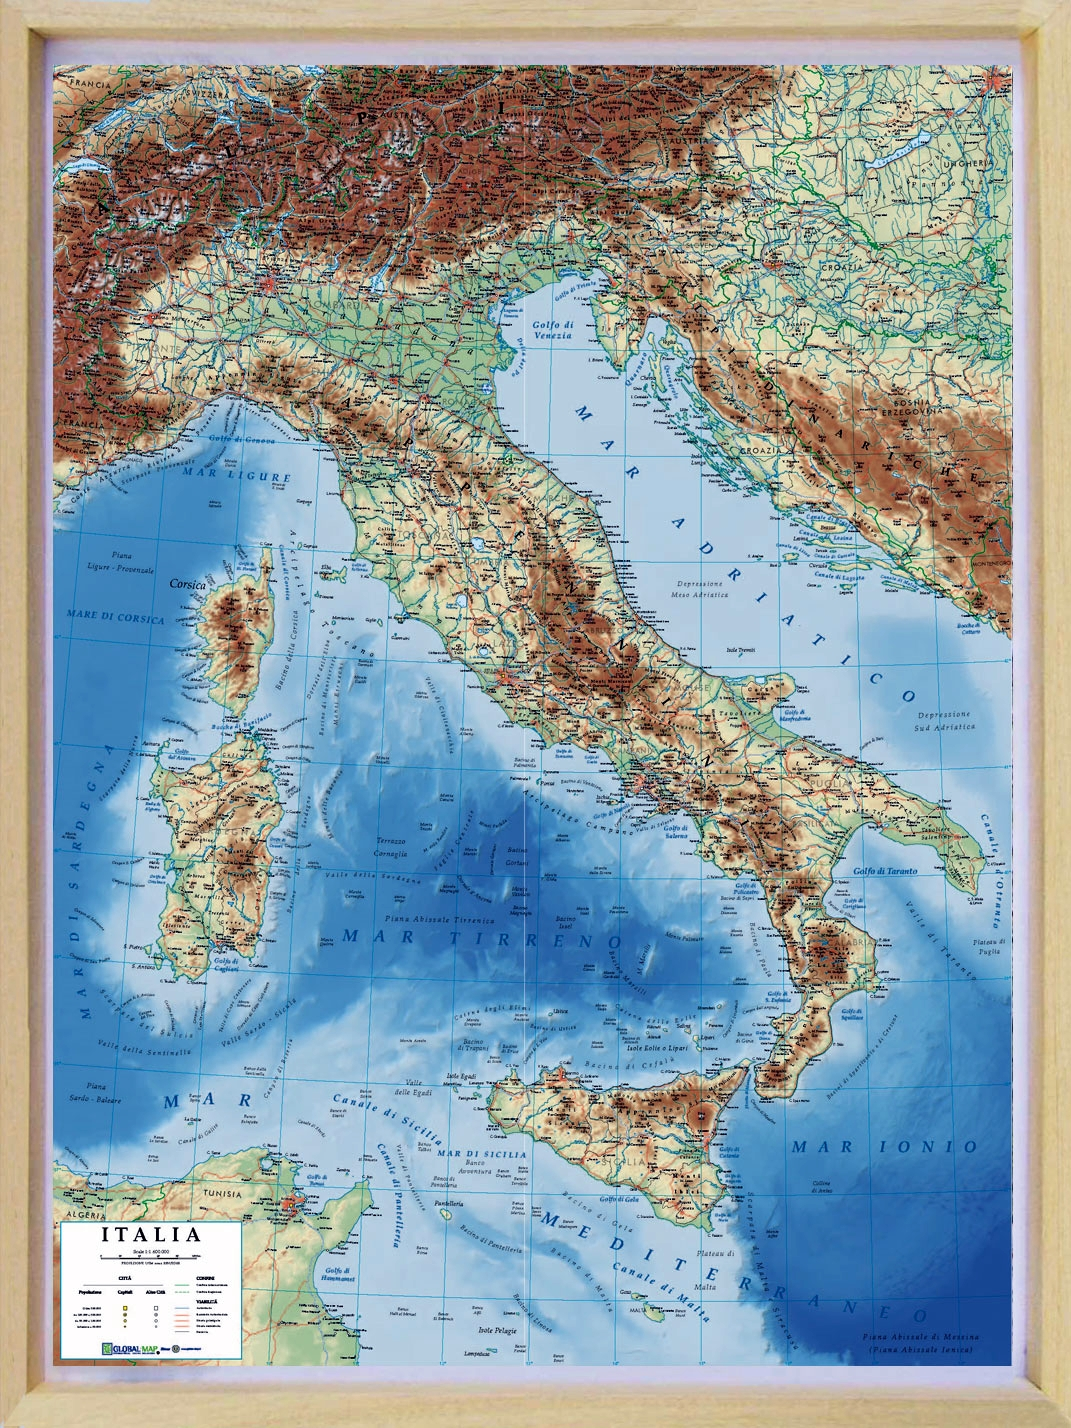 Picture Of Italy Map.Relief Map Of Italy As 3d Map